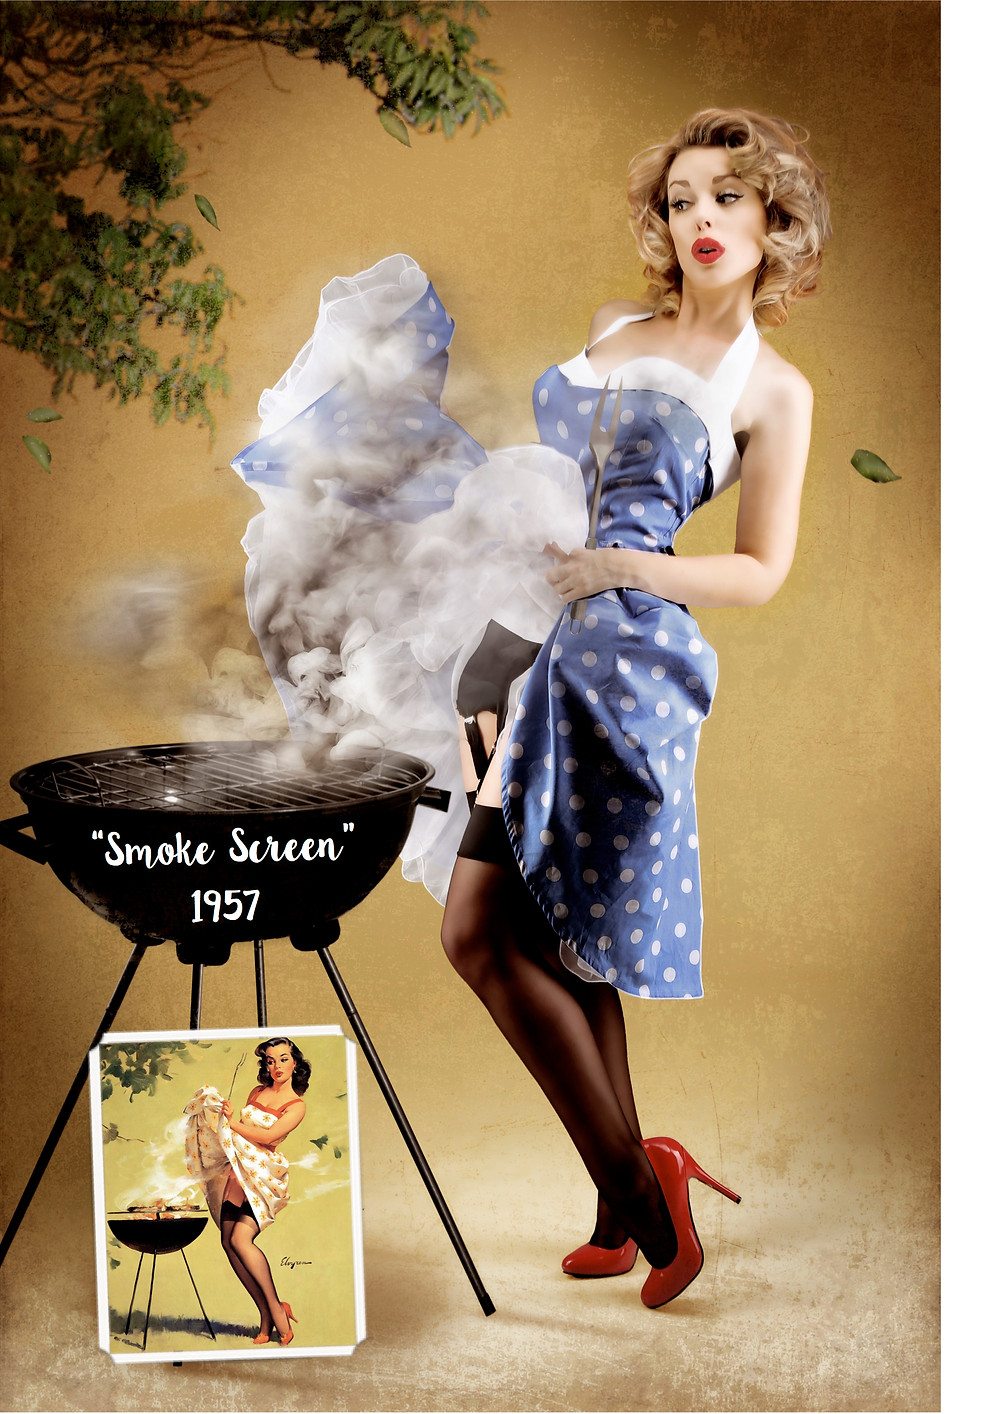 BBQ Pin Up | Smoke Screen 1957 Gil Elvgren inspired recreation pin up art with Heather Valentine Model by Dollhouse Photography